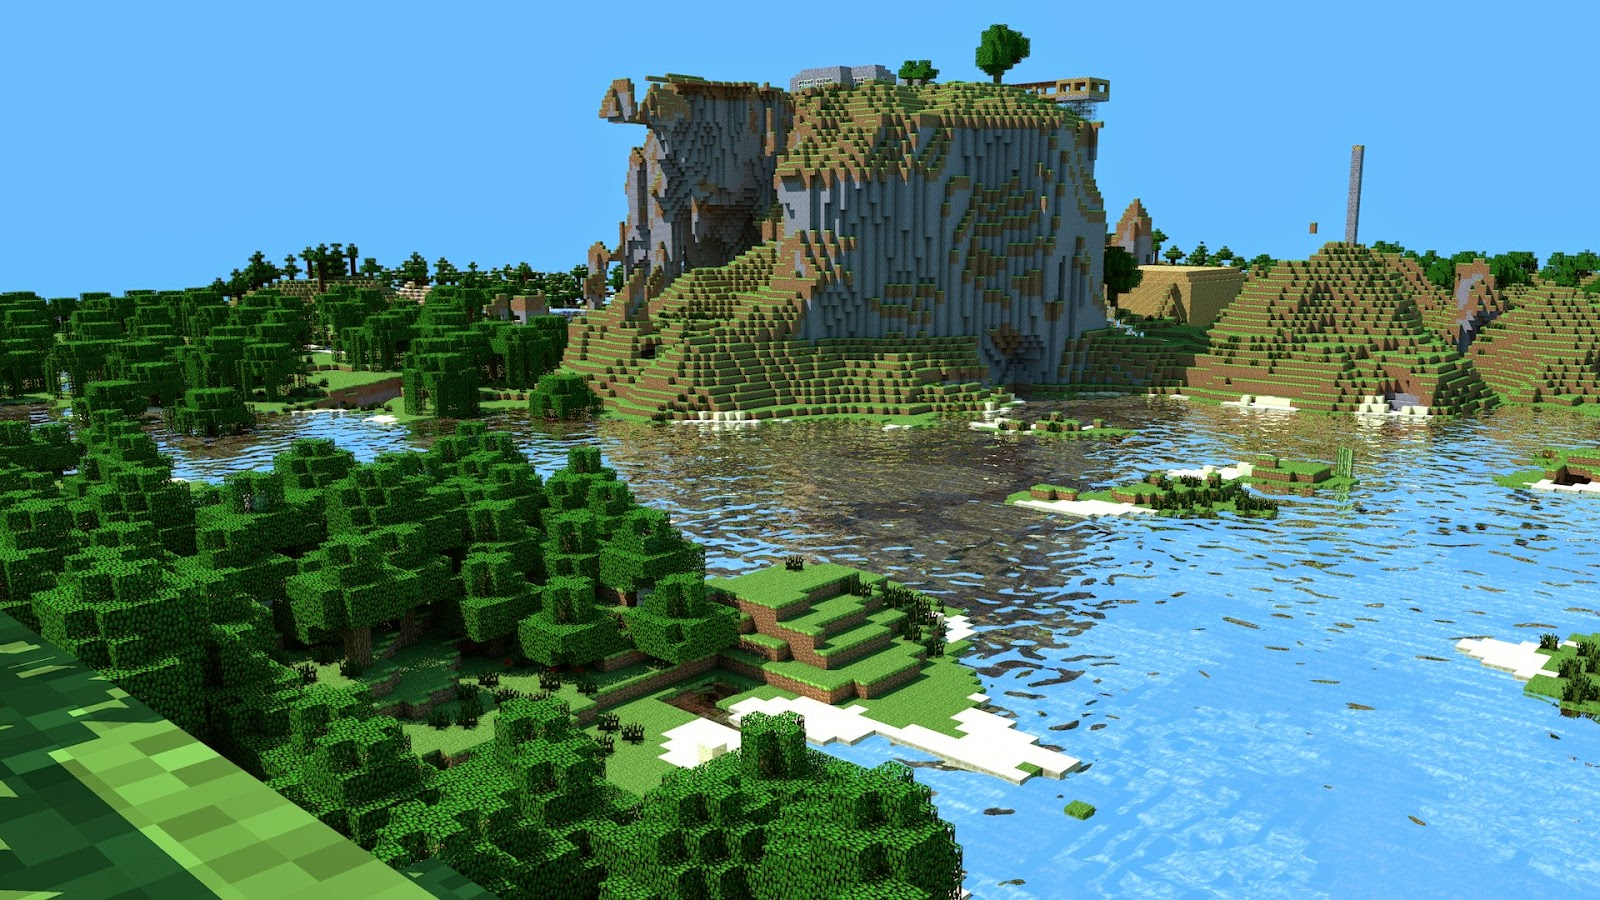 minecraft 1920x1200 wallpaper high - photo #9